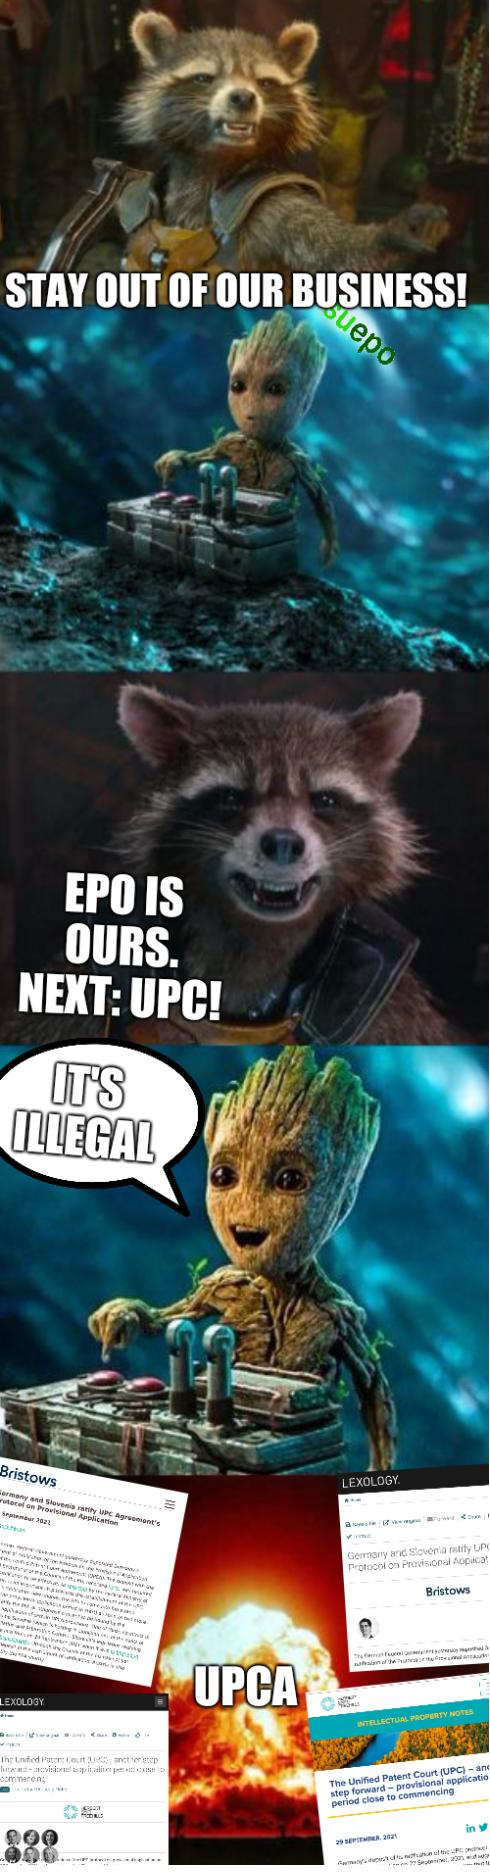 EPO is ours. Next: UPC! Stay out of our business! UPCA: It's illegal